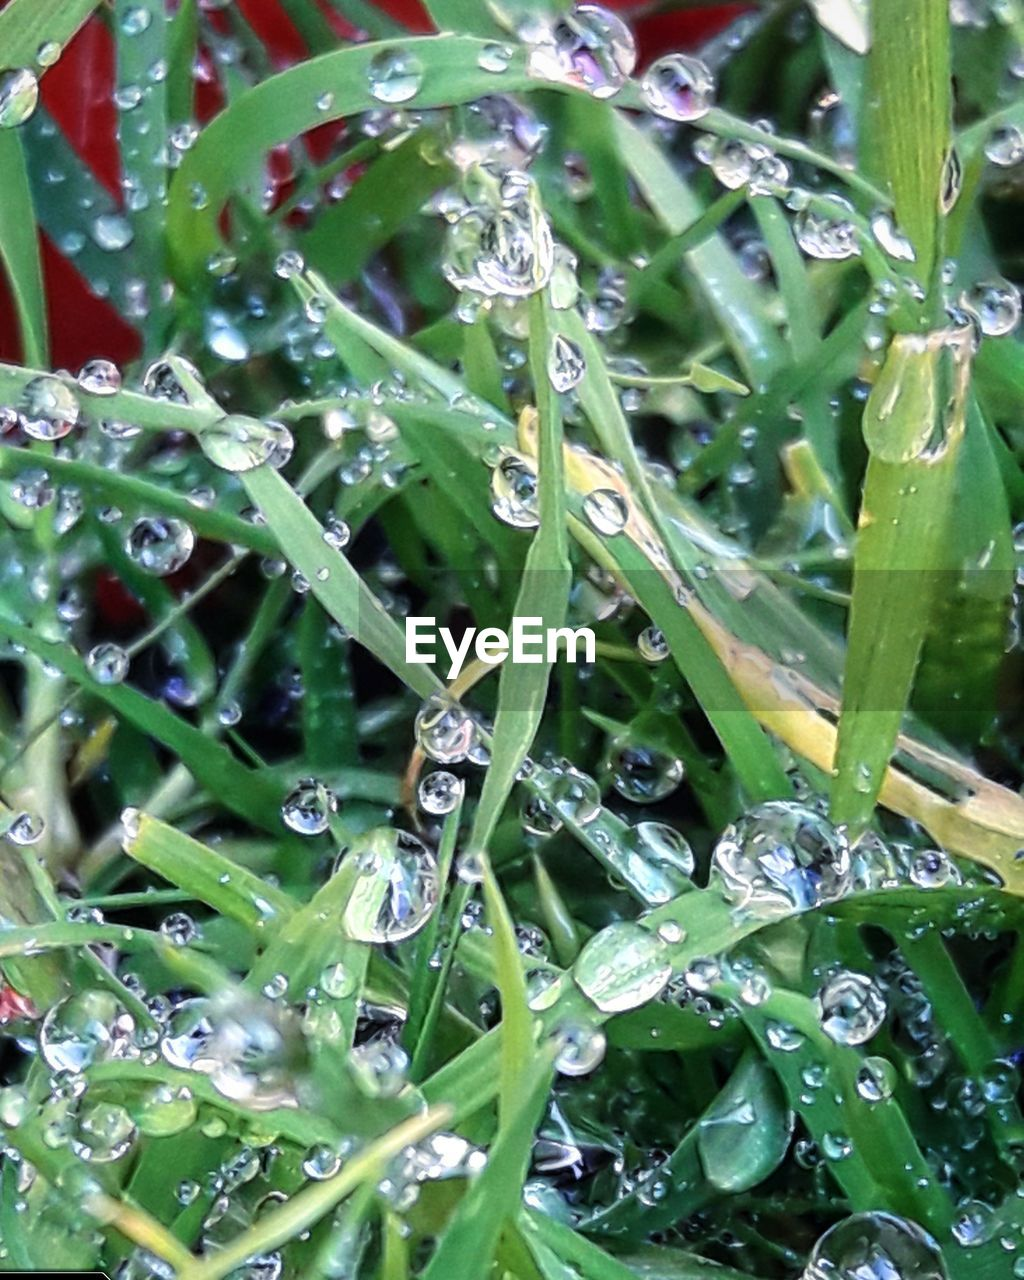 drop, water, wet, green color, plant, close-up, freshness, growth, leaf, plant part, nature, rain, beauty in nature, no people, raindrop, purity, dew, selective focus, rainy season, outdoors, blade of grass, leaves